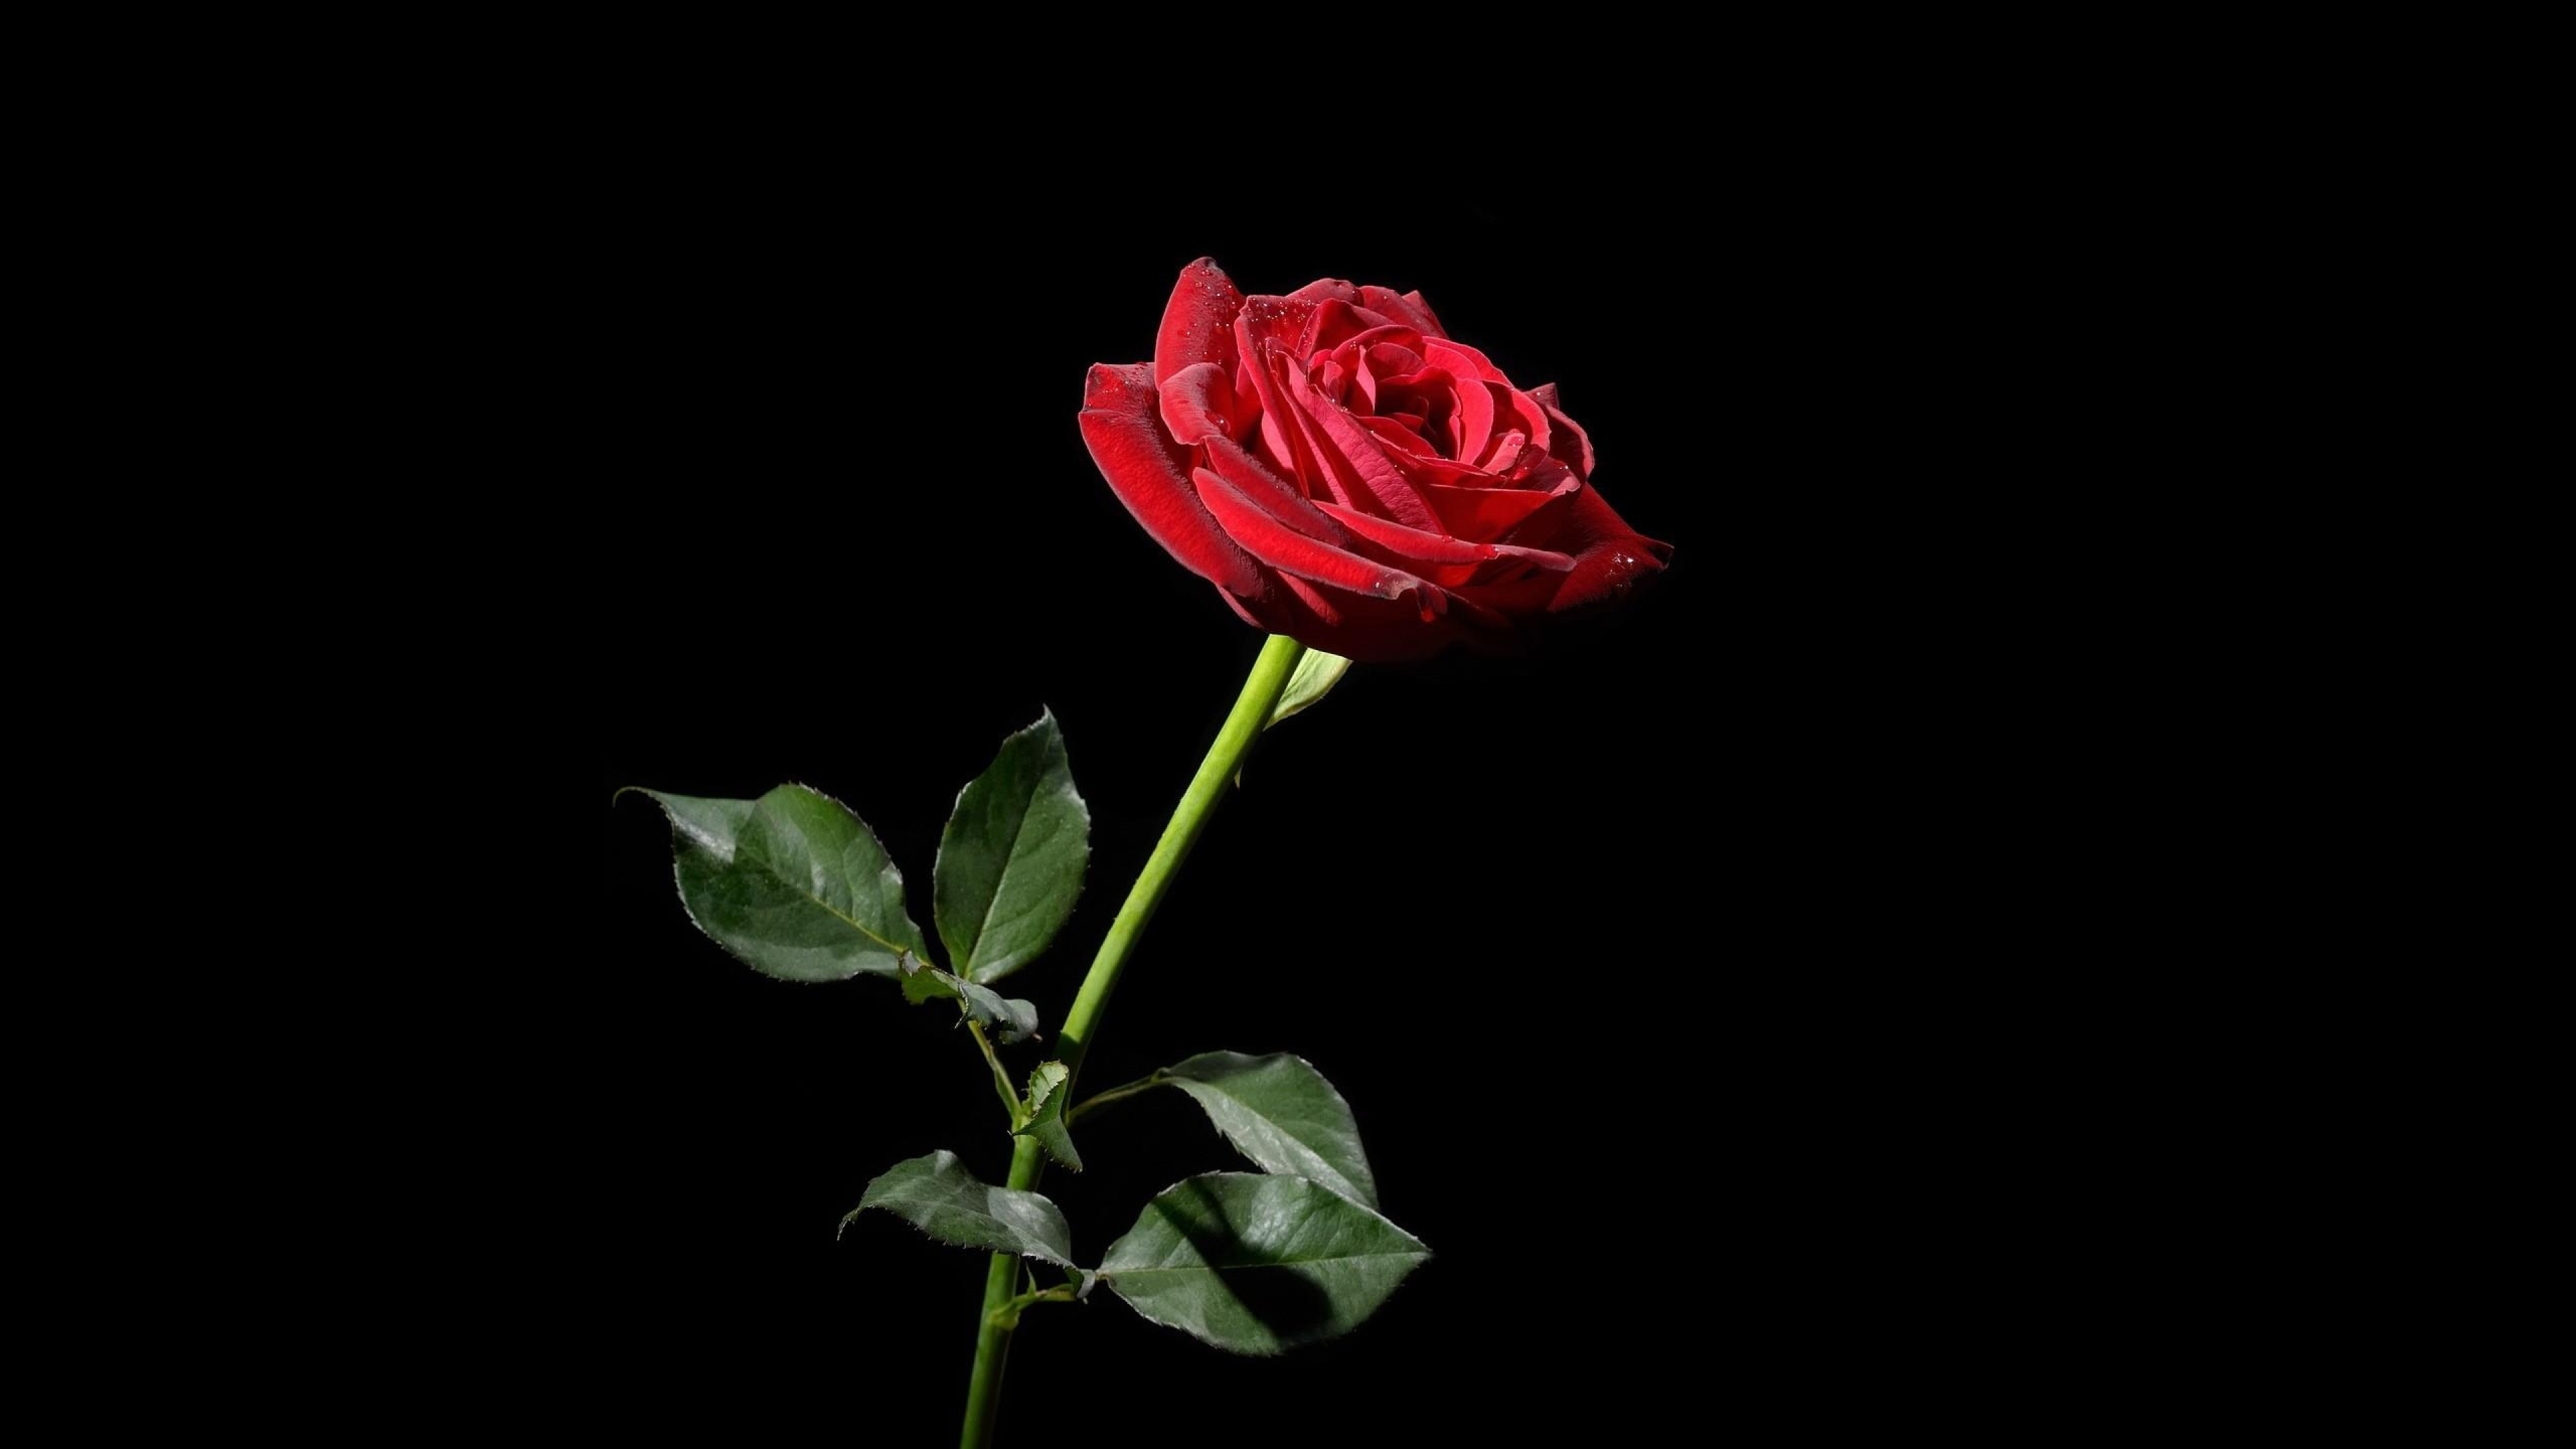 Black and red rose wallpaper 63 images - Pink rose black background wallpaper ...